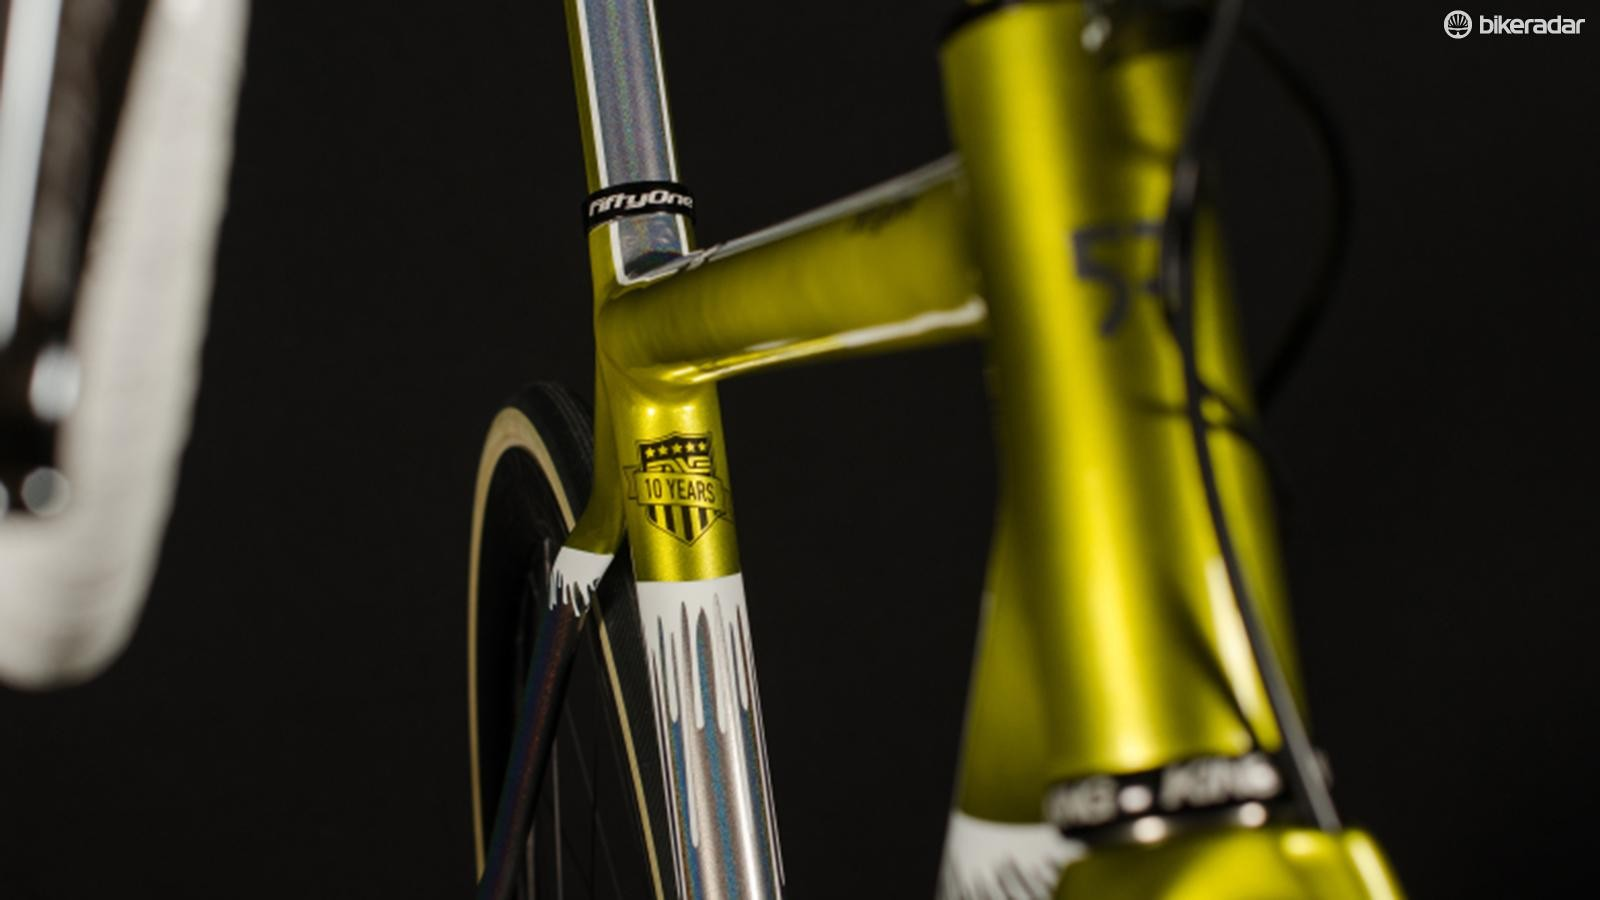 The bike is being launched at the Eurobike show